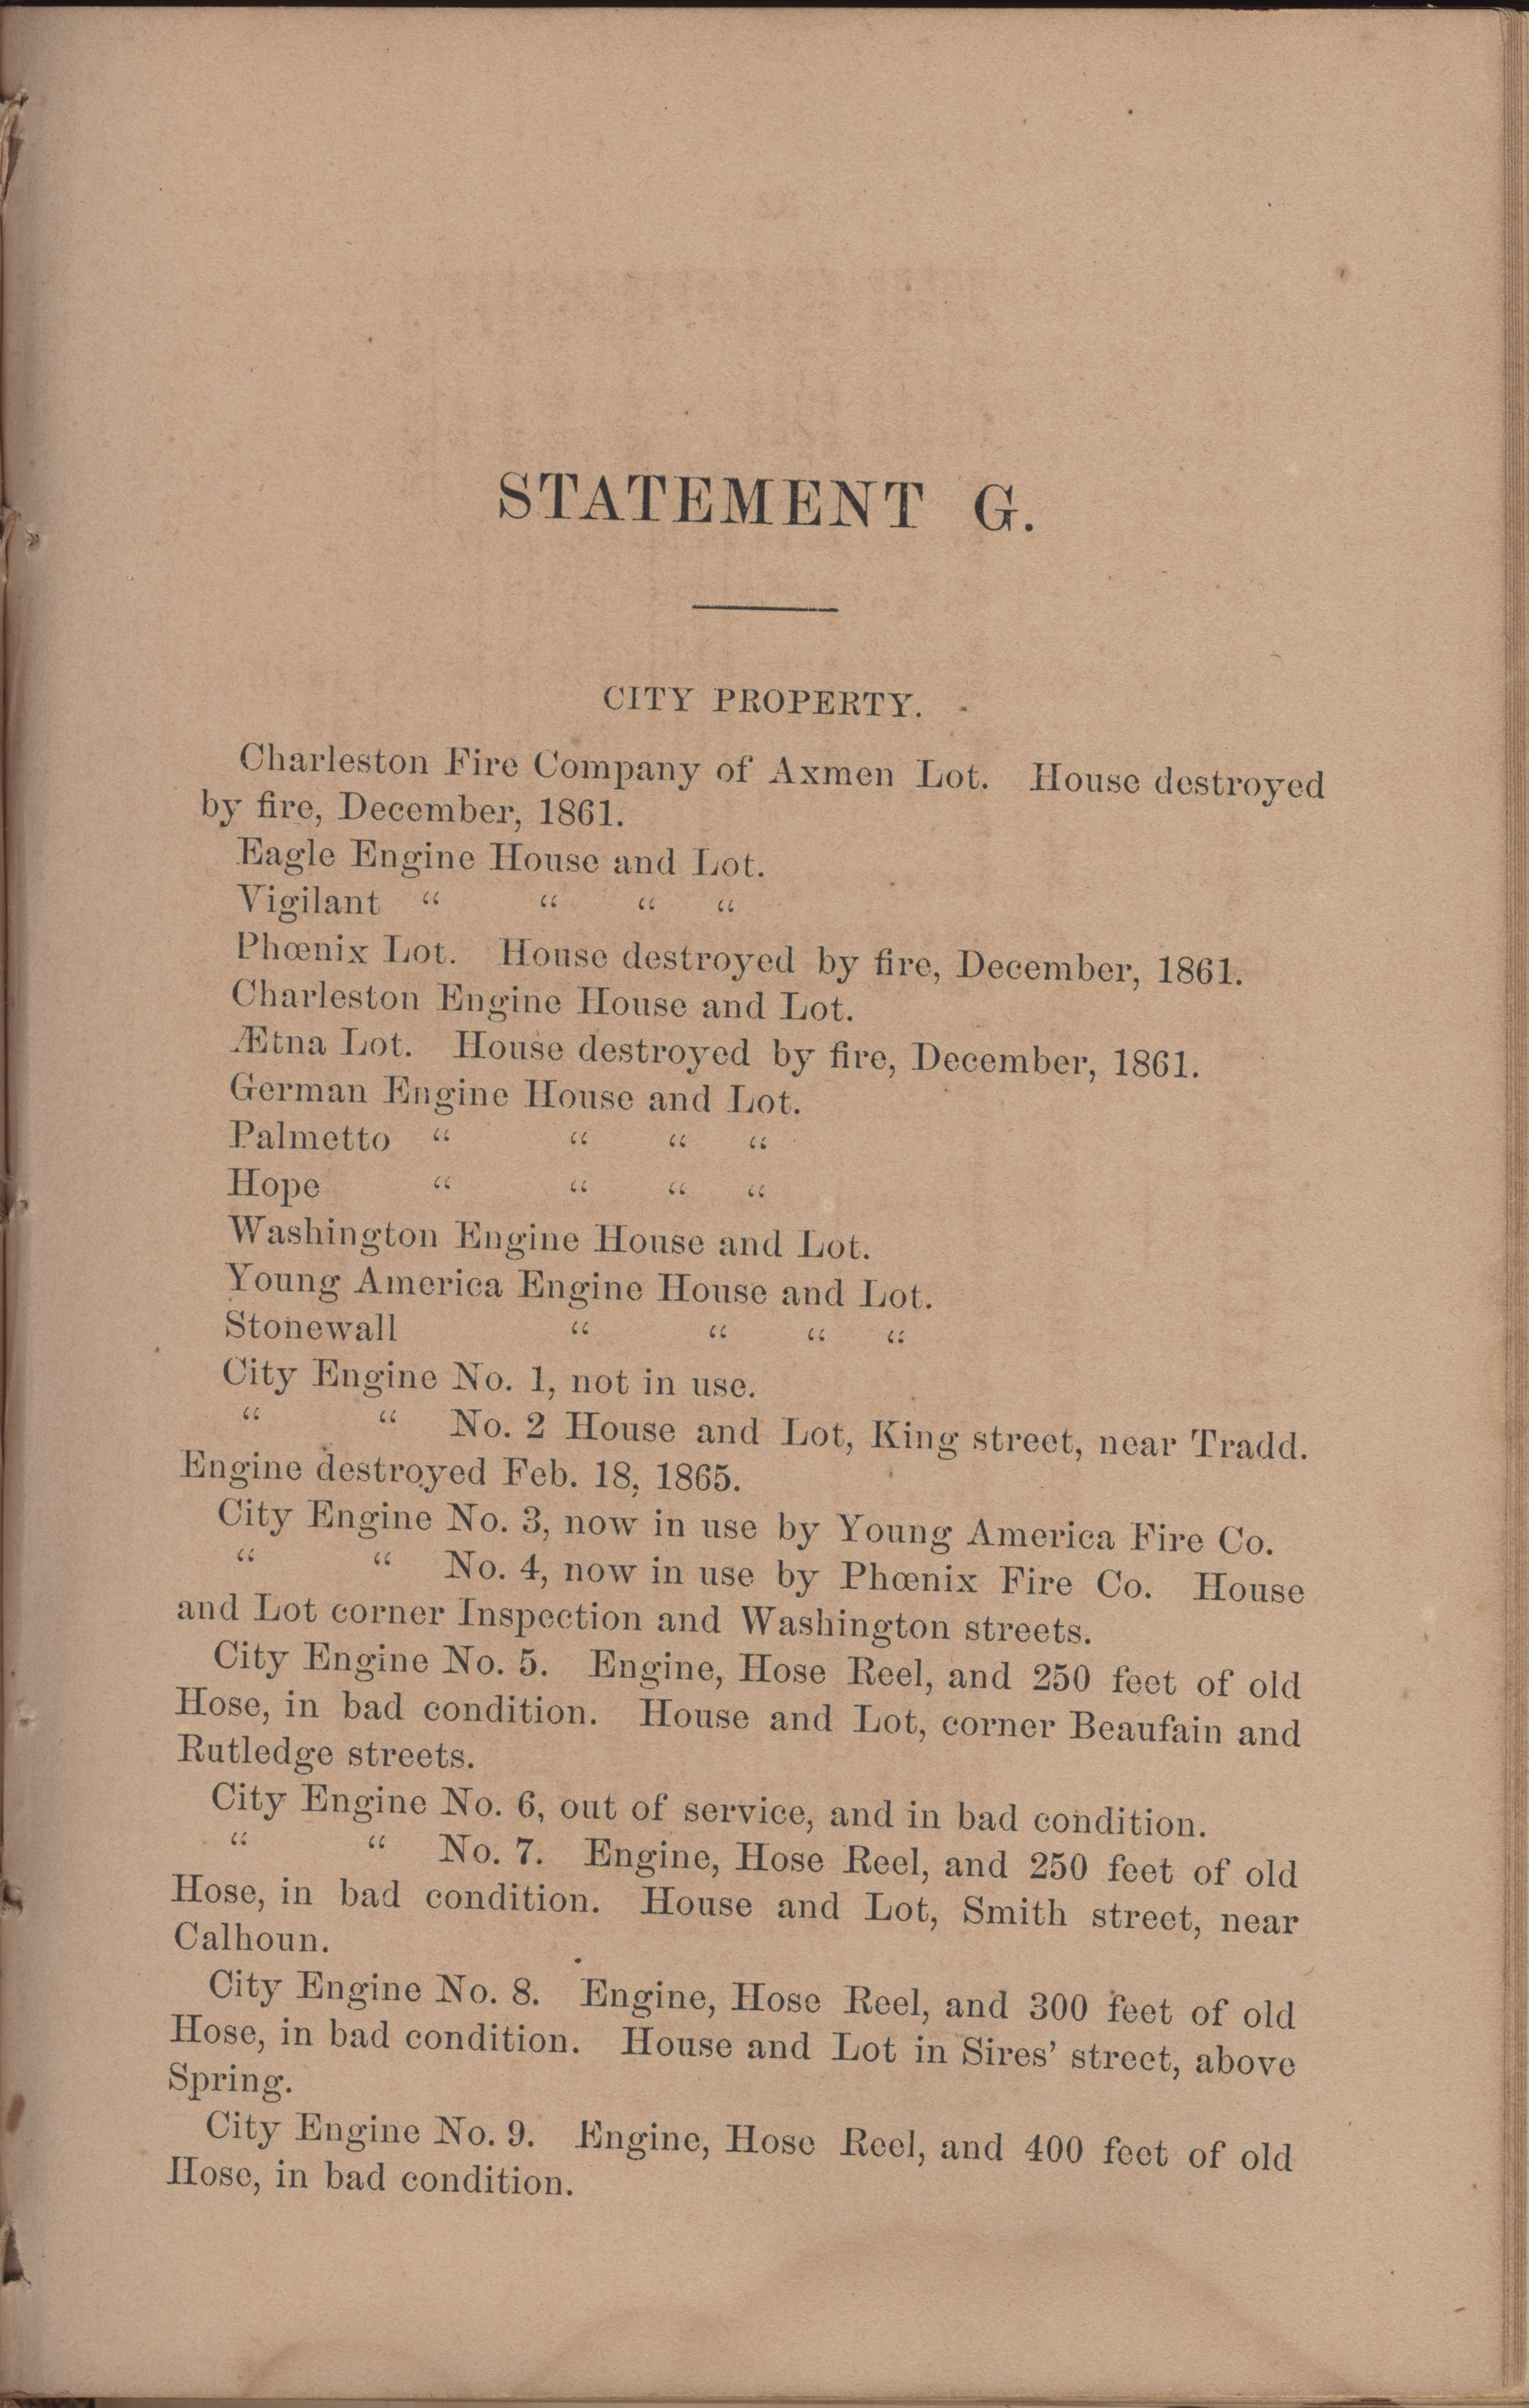 Annual Report of the Chief of the Fire Department of the City of Charleston, page 131